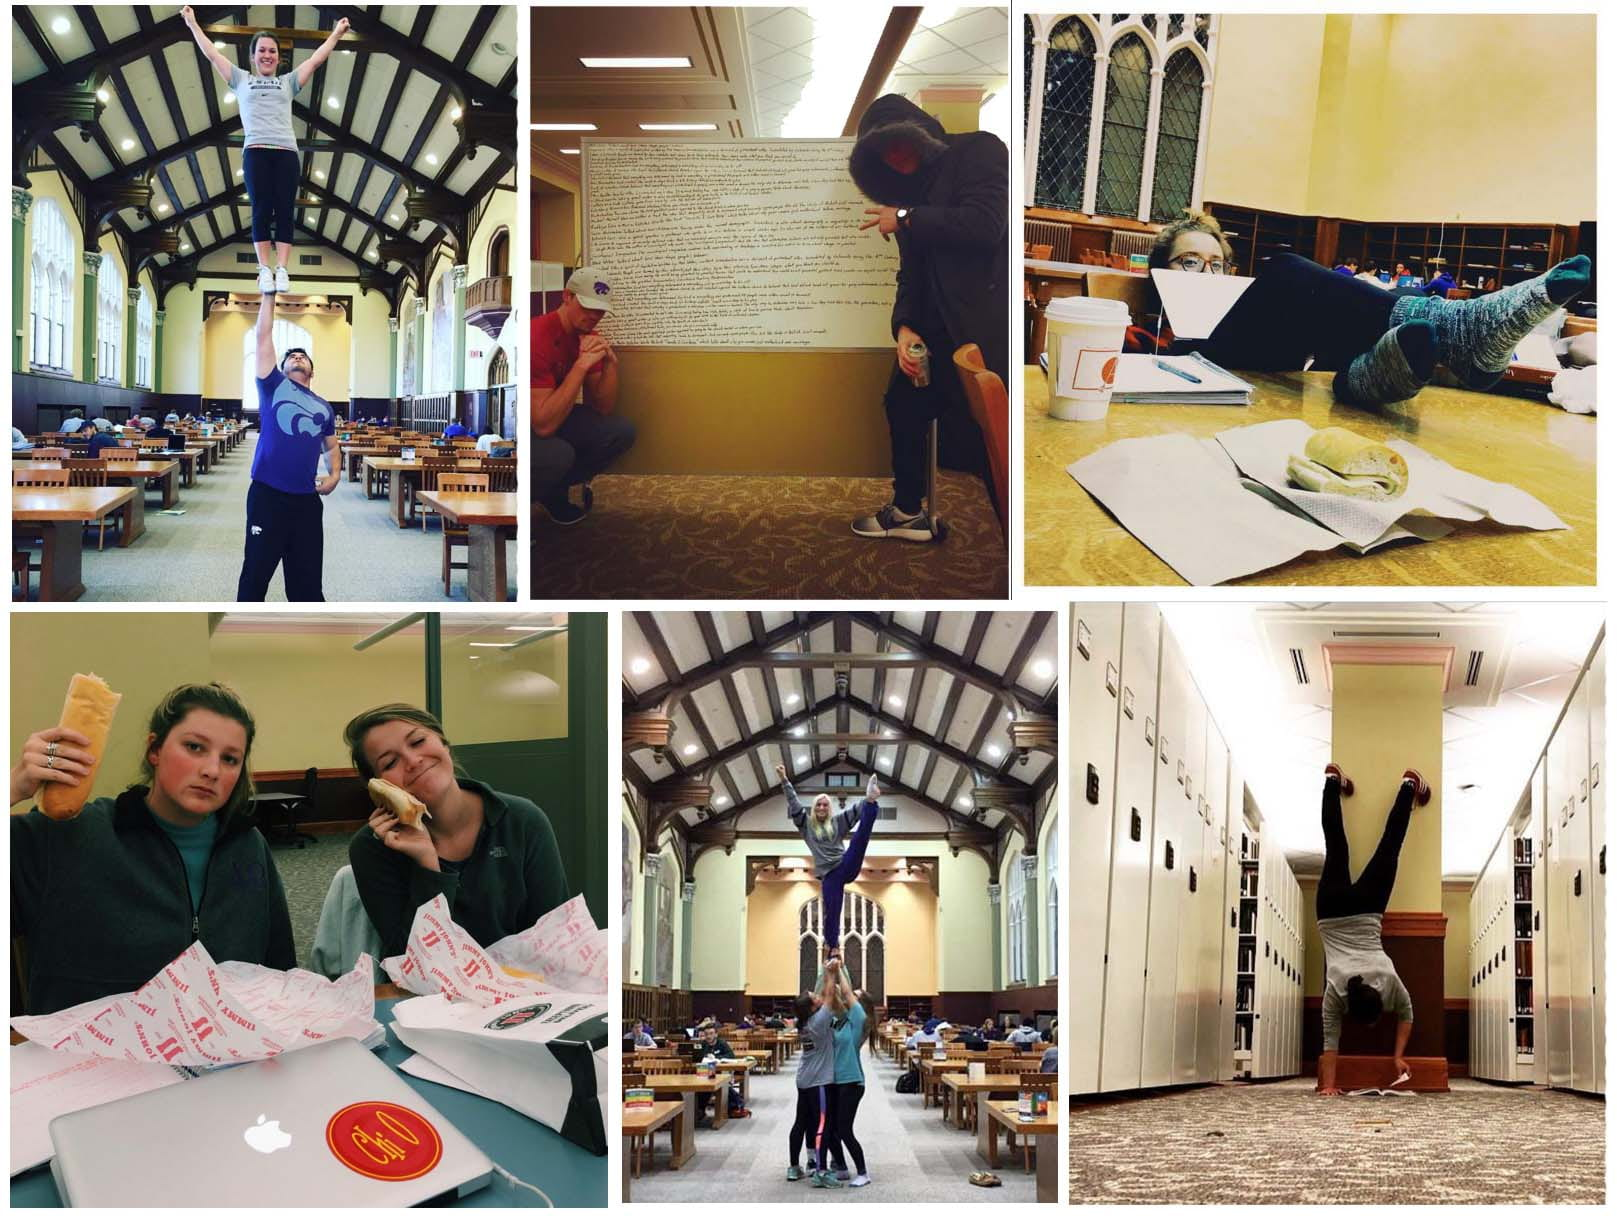 A collage of K-State students in different parts of Hale Library.